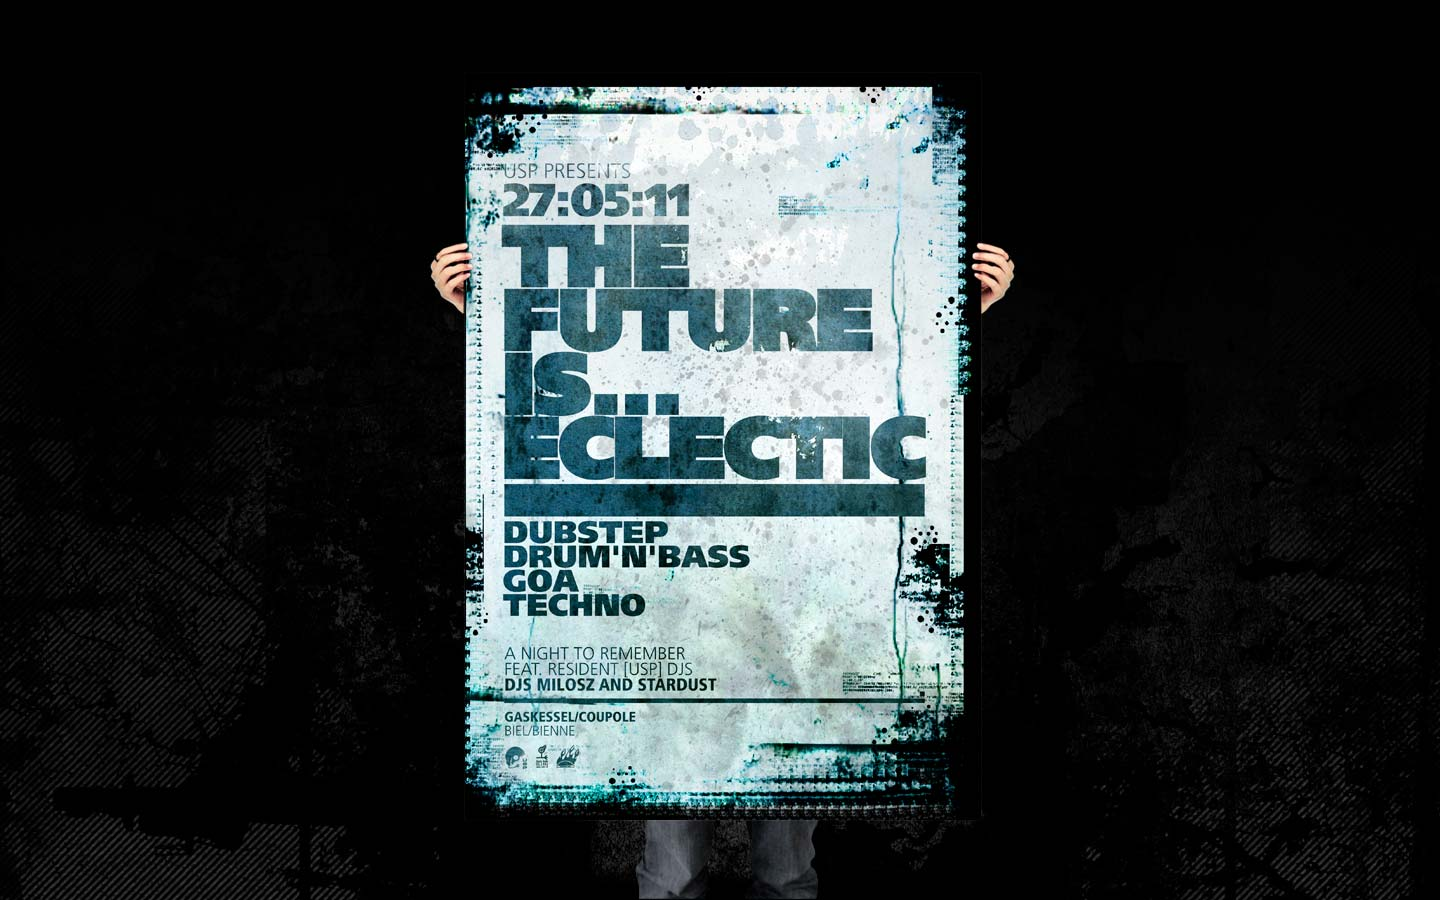 USP - Future Is Eclectic - Laurent Lemoigne - Donanubis - Don Anubis - Graphic Design - Underground Sound Promotion - Coupole - Bienne - Art - Music - Electronic - Party - Event - Flyer - Poster Alternative - Underground - Geneva - Switzerland - Dark Psytrance - Darkpsy - Trance - Drum and Bass - DNB - Industrial - Techno